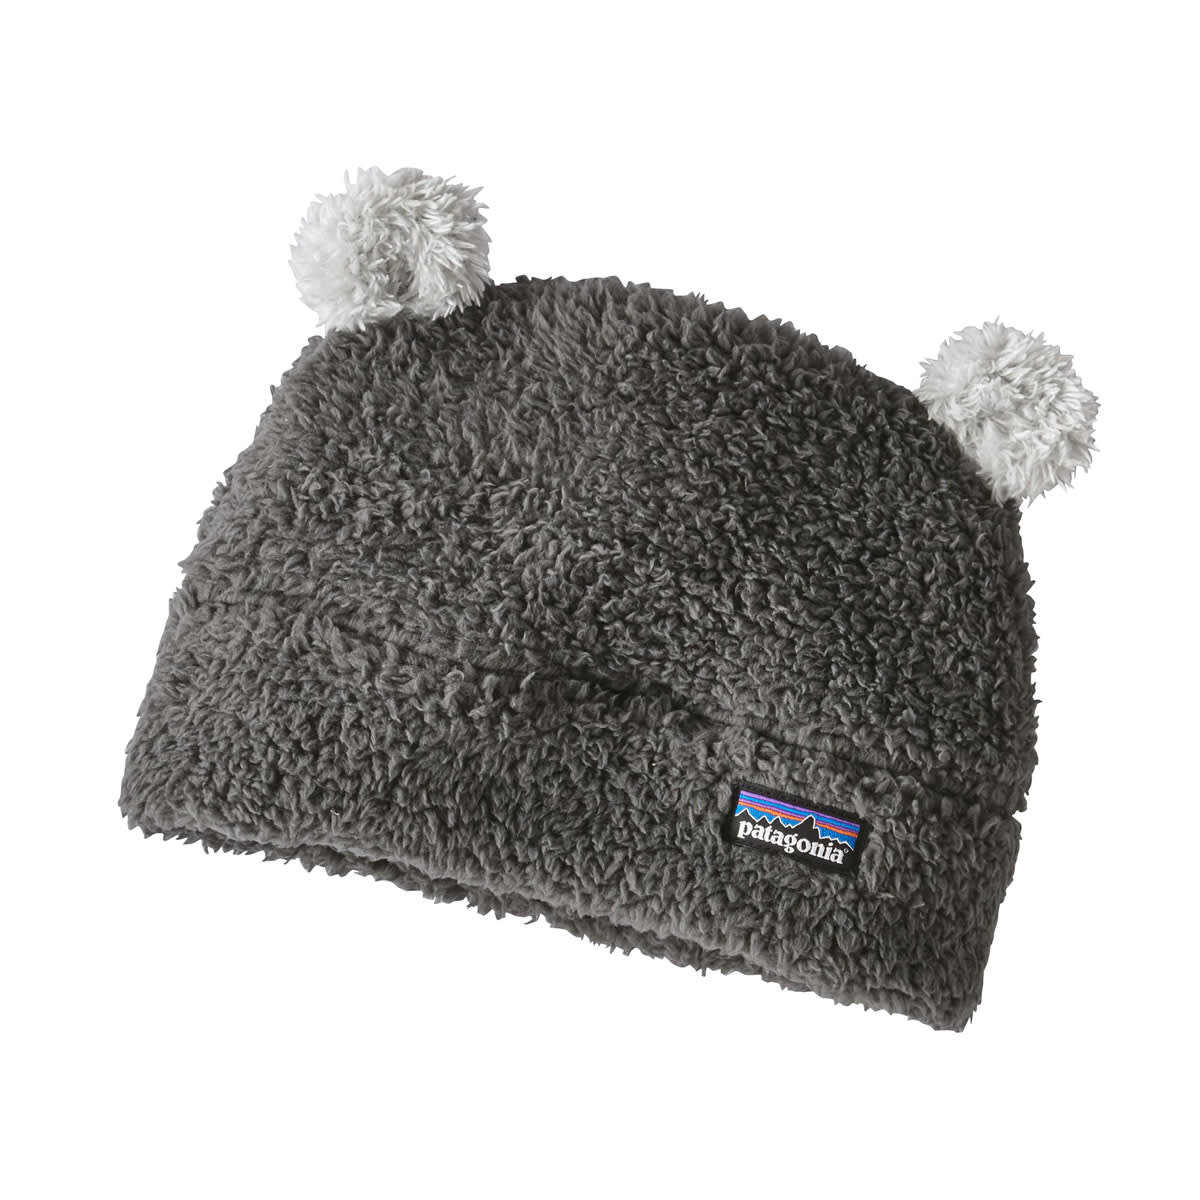 Patagonia Baby Furry Friends Beanie Kids 2020